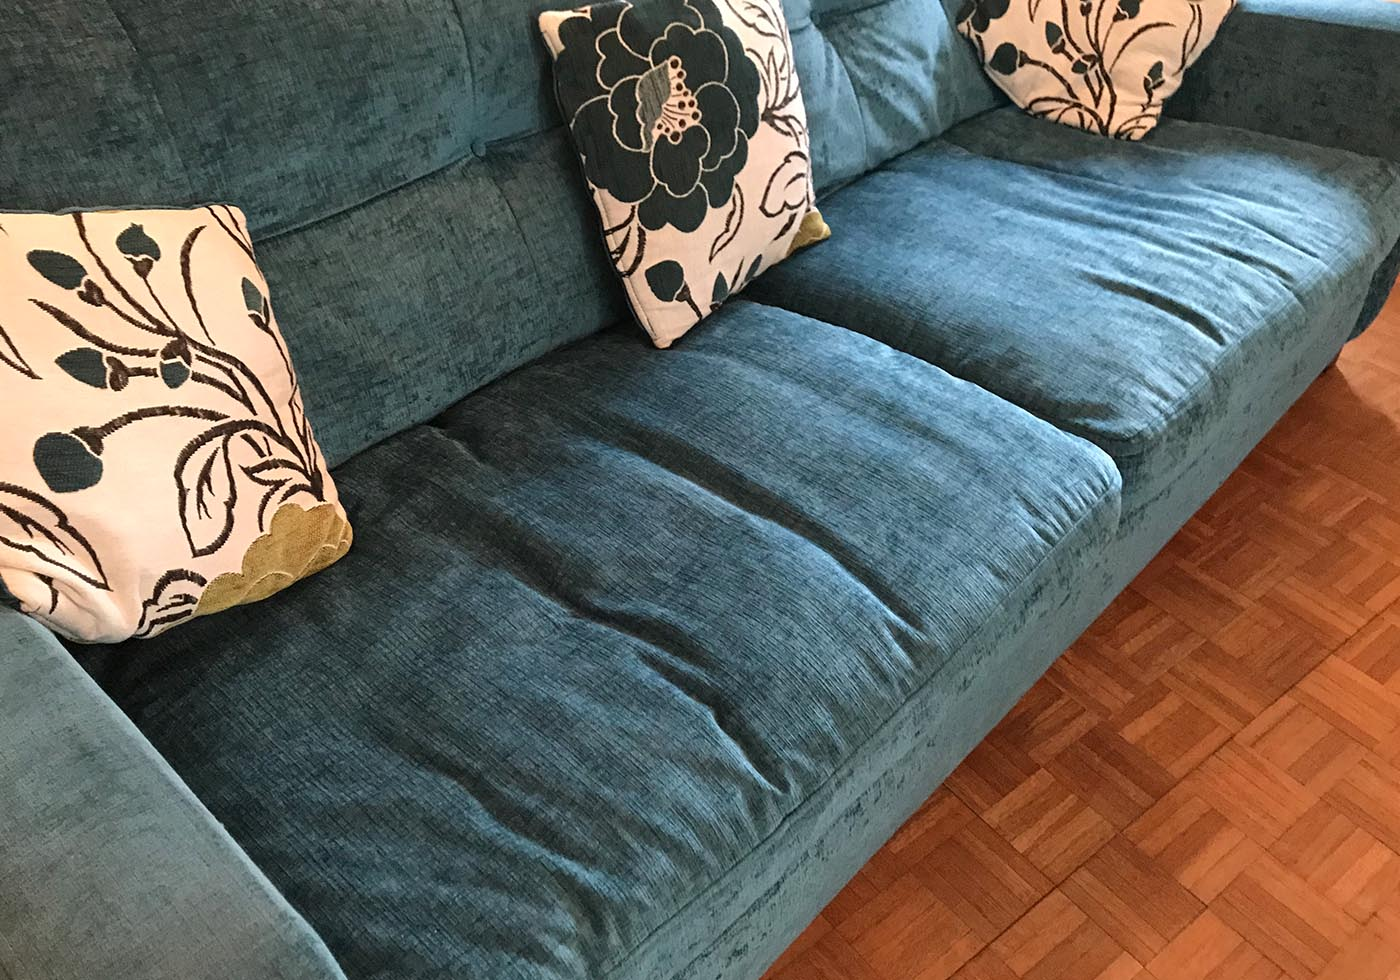 worn out sofa cushions